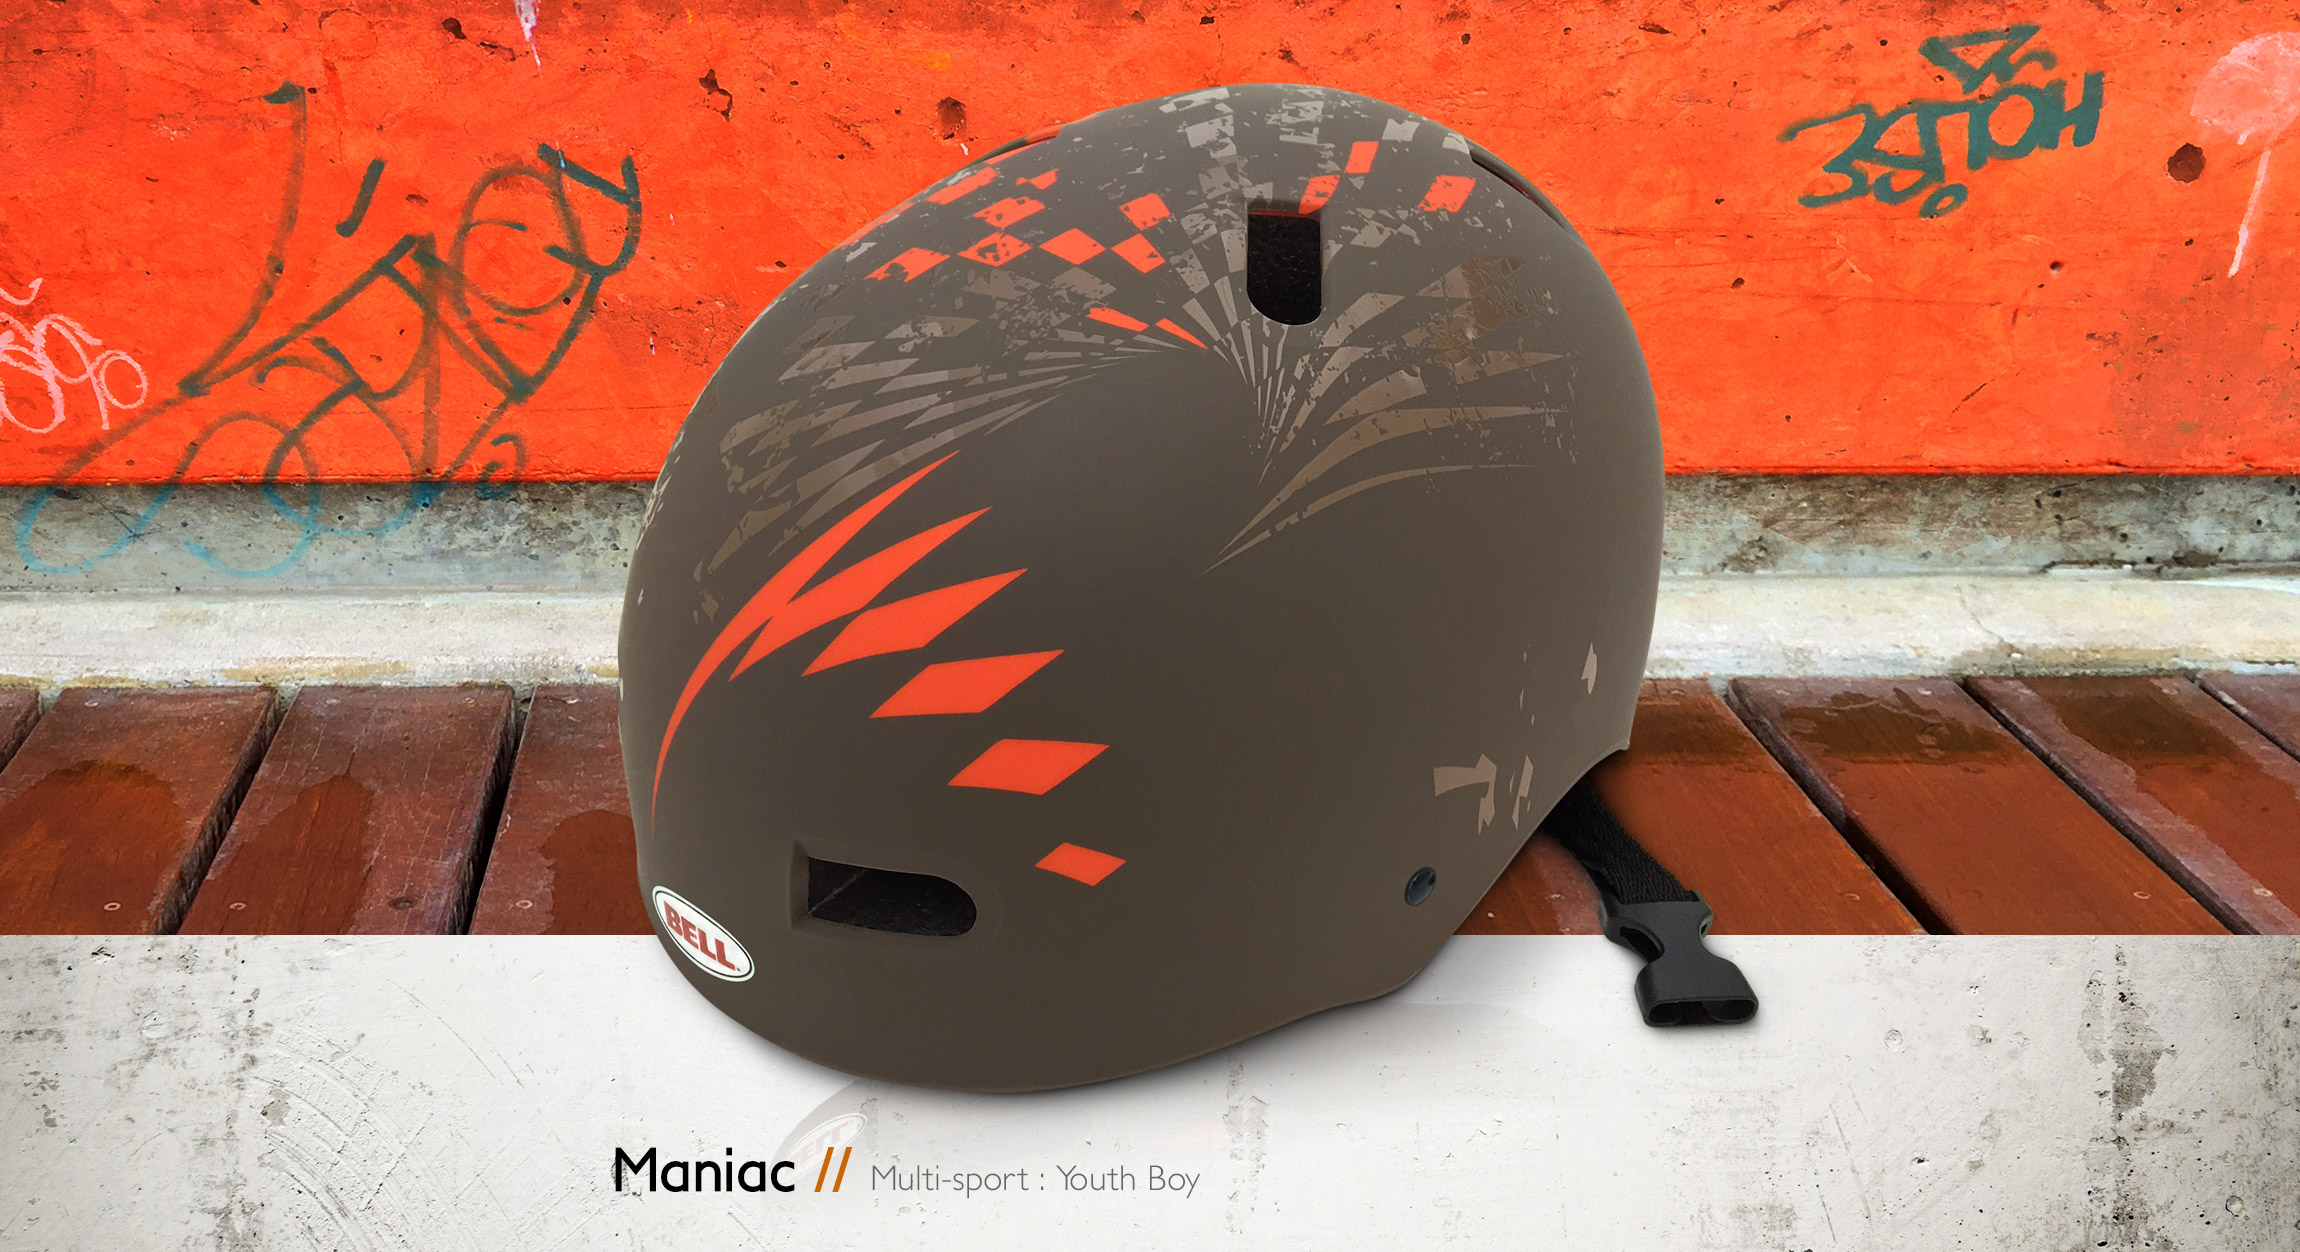 Bell Helmets Maniac multi-sport youth boy bike & skate helmet design - Graphic Regime